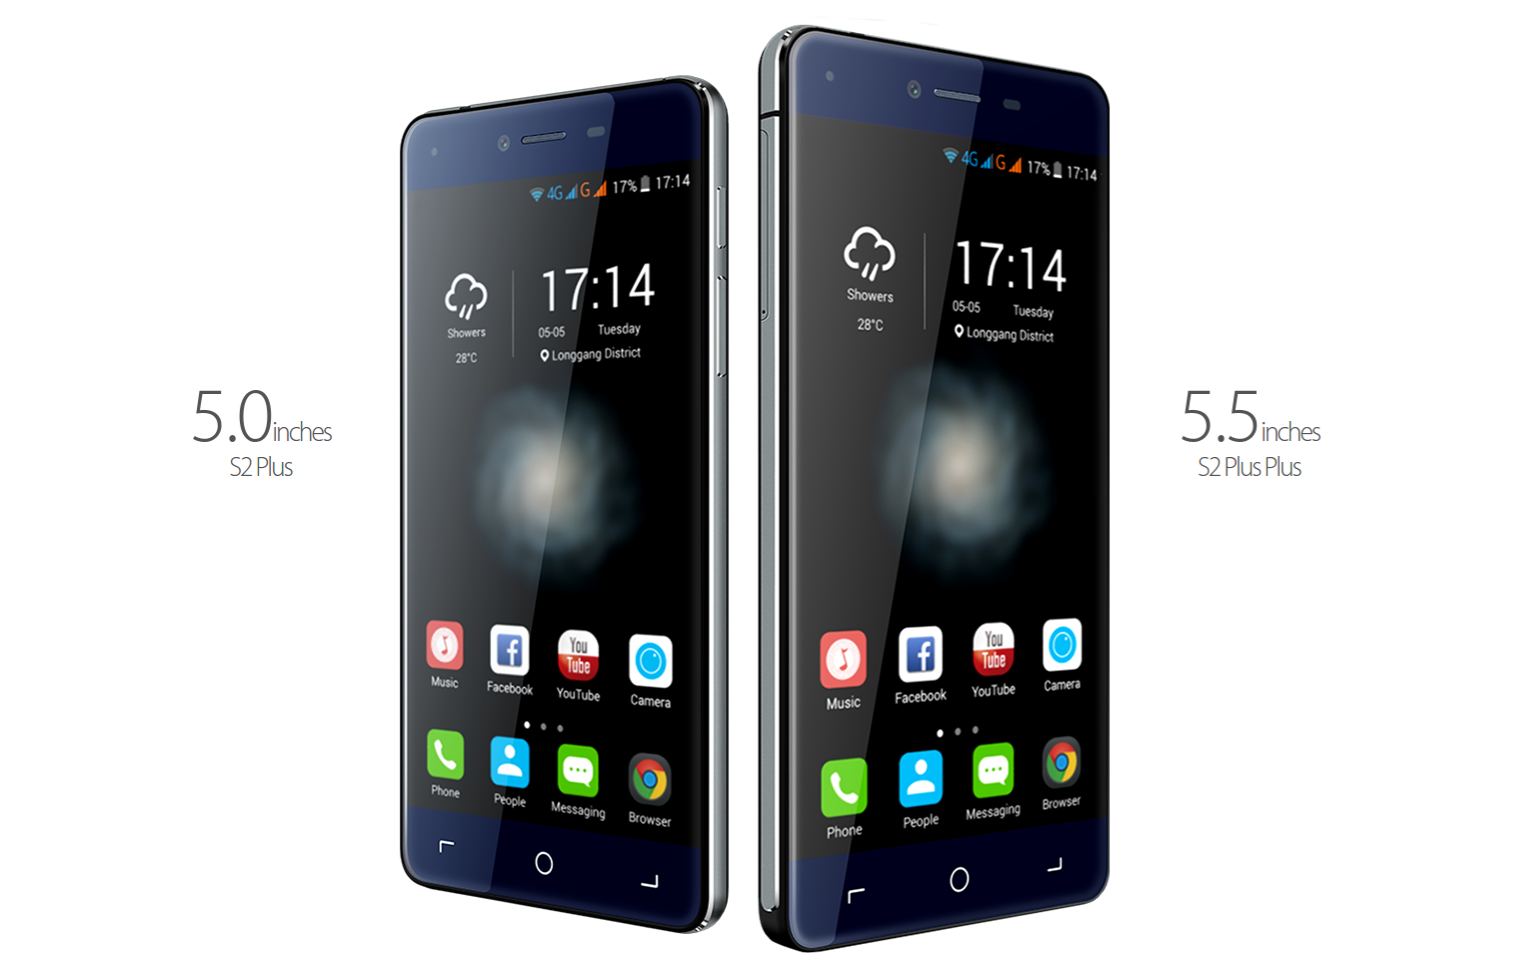 Elephone S2 & S2 Plus Get Gorilla Glass Back And 850MHz